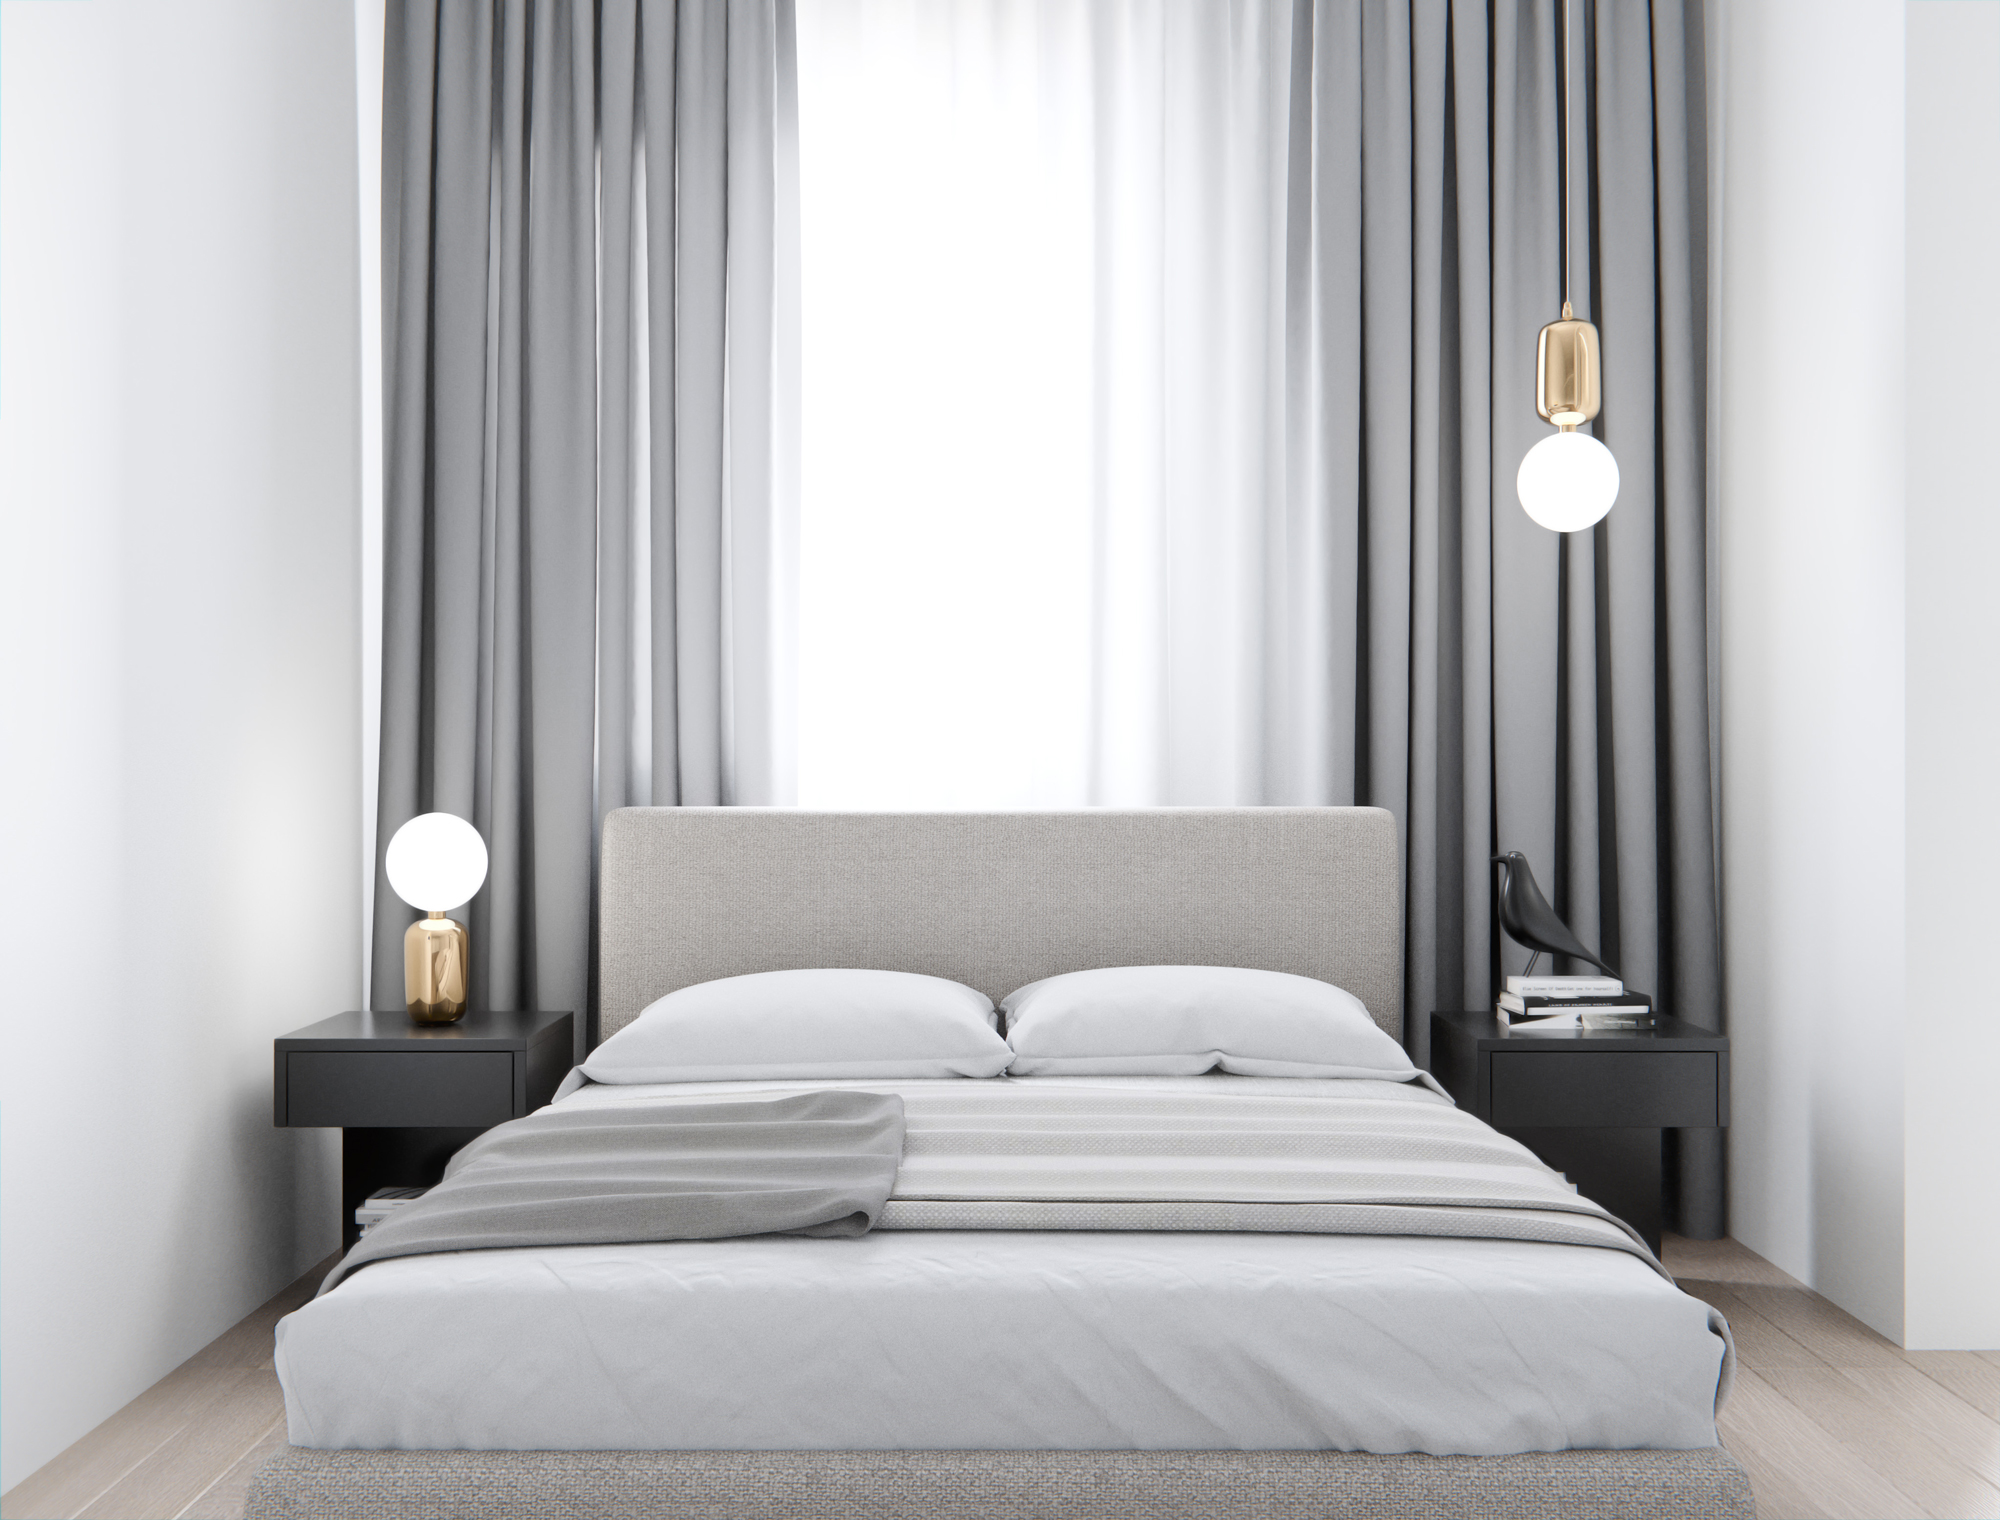 Bedroom Ideas  52 Modern Design Ideas for your Bedroom   The LuxPad joanna gauza bedroom decorating ideas